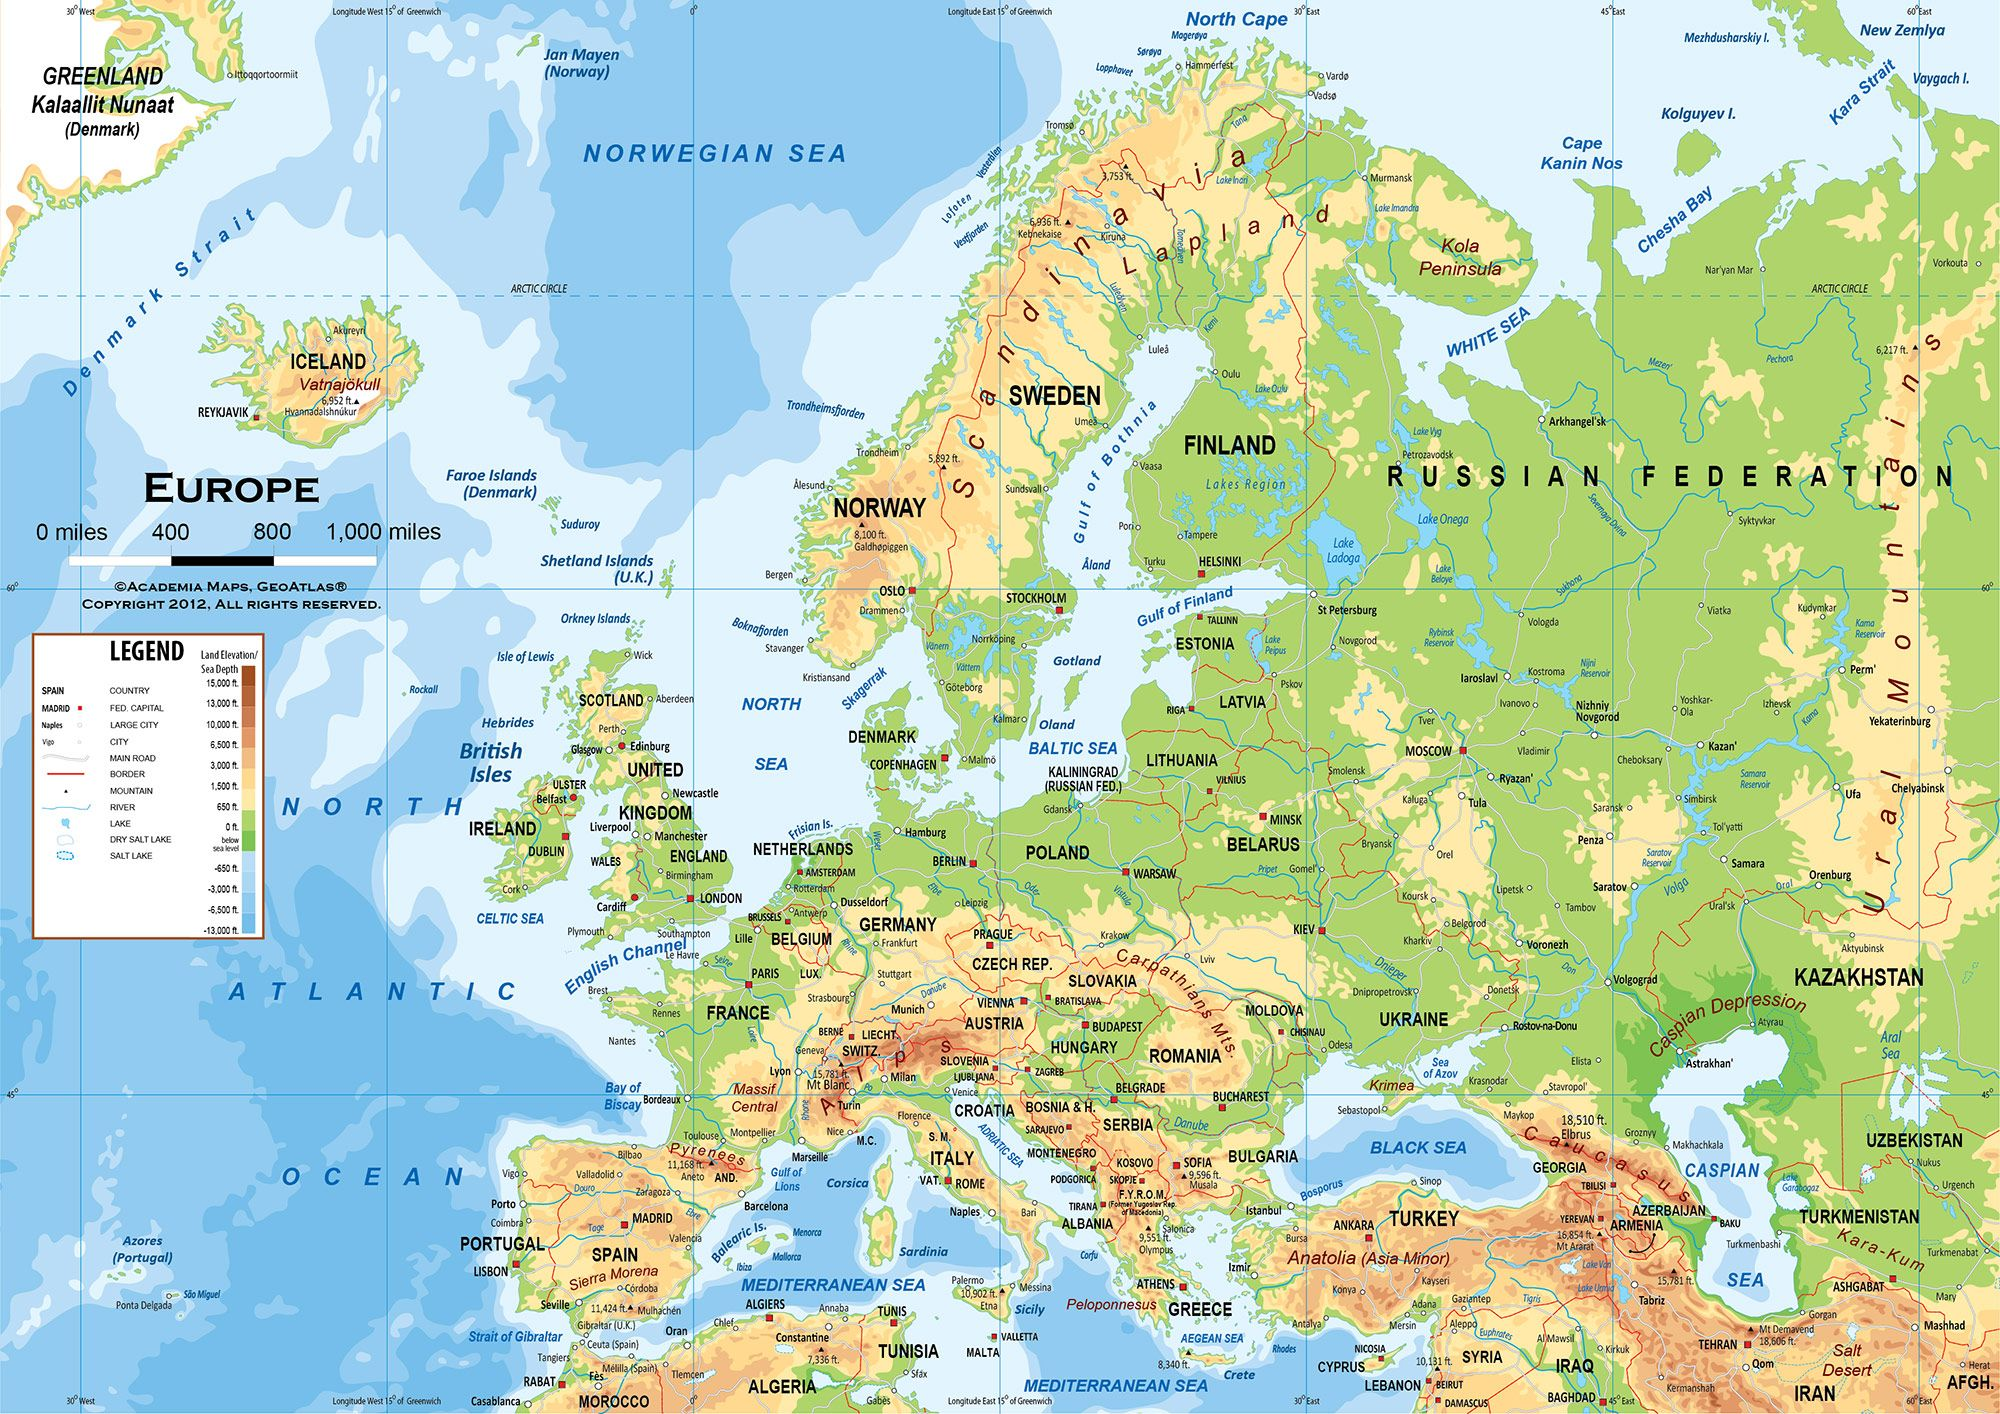 europe physical features map Google Search – Geographical Map of Eastern Europe